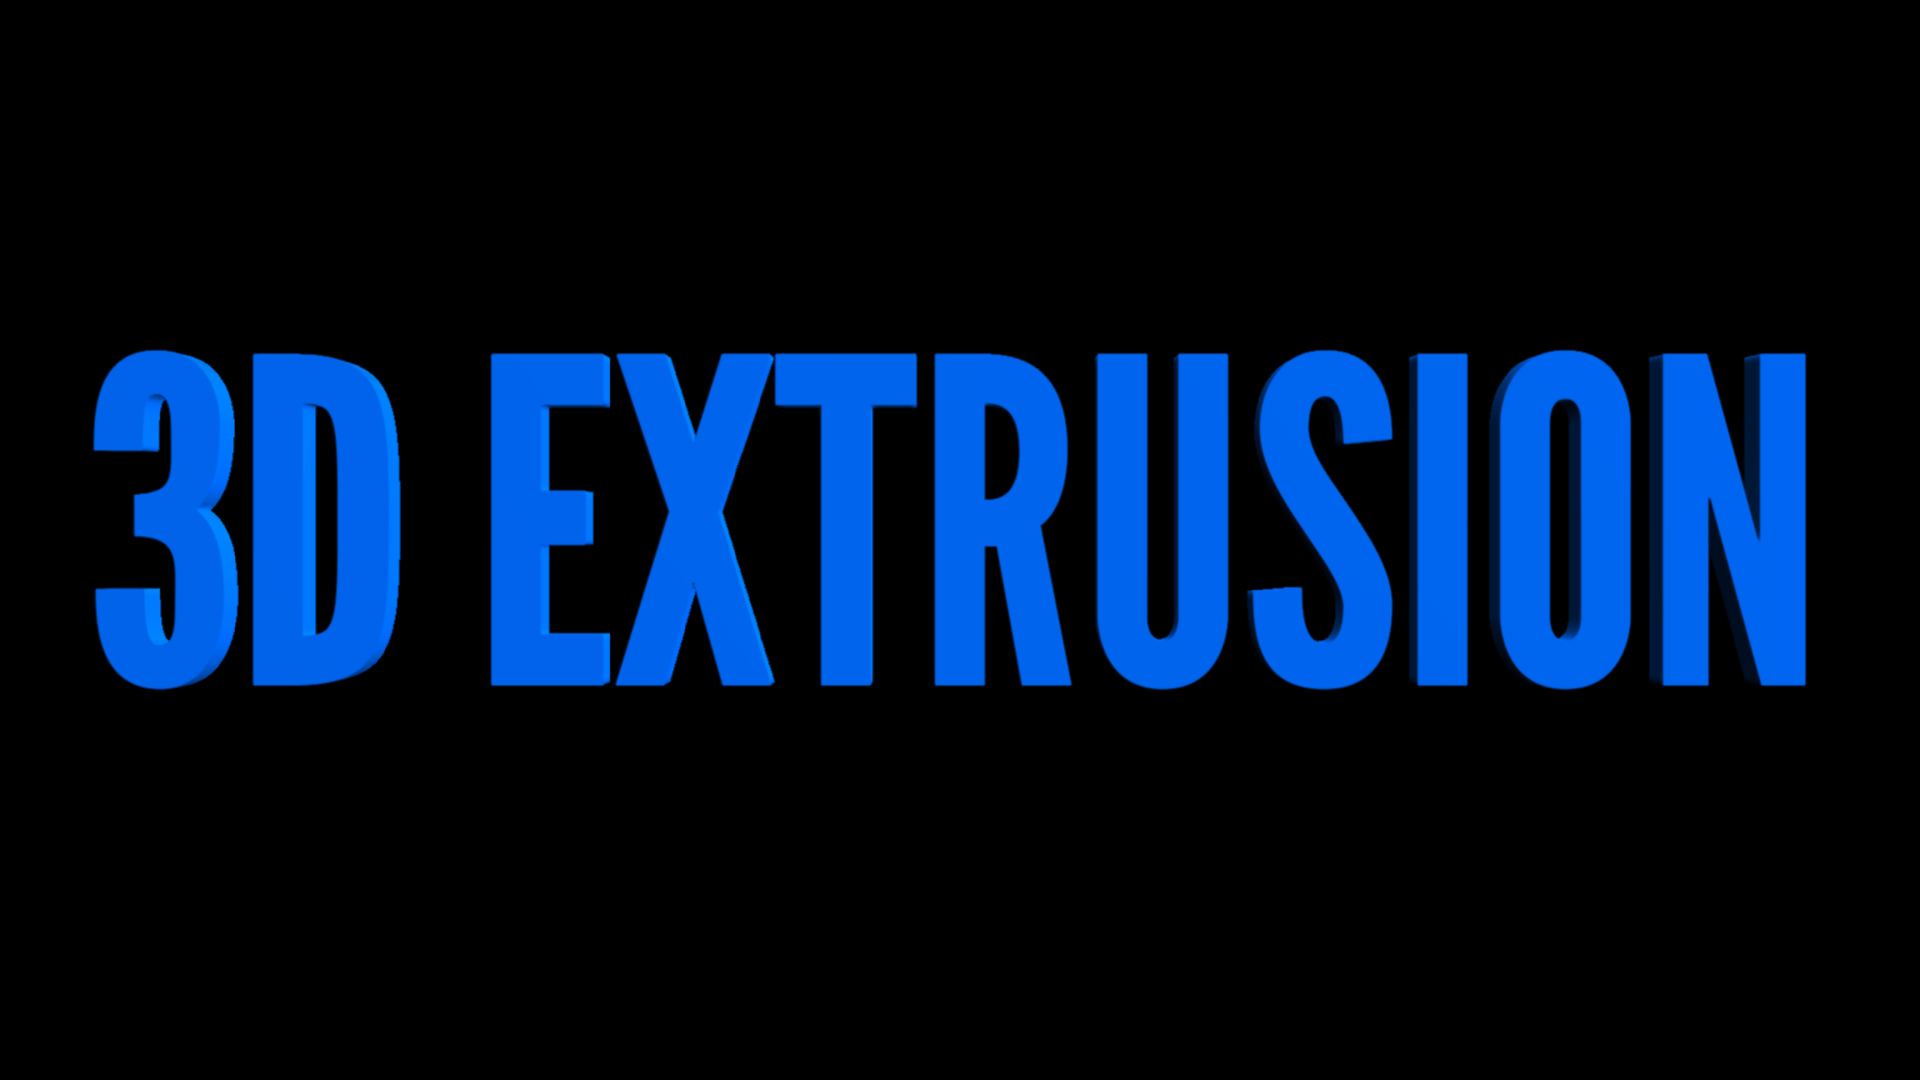 3D Text Extrusion Effect from Ignite Pro by HitFilm